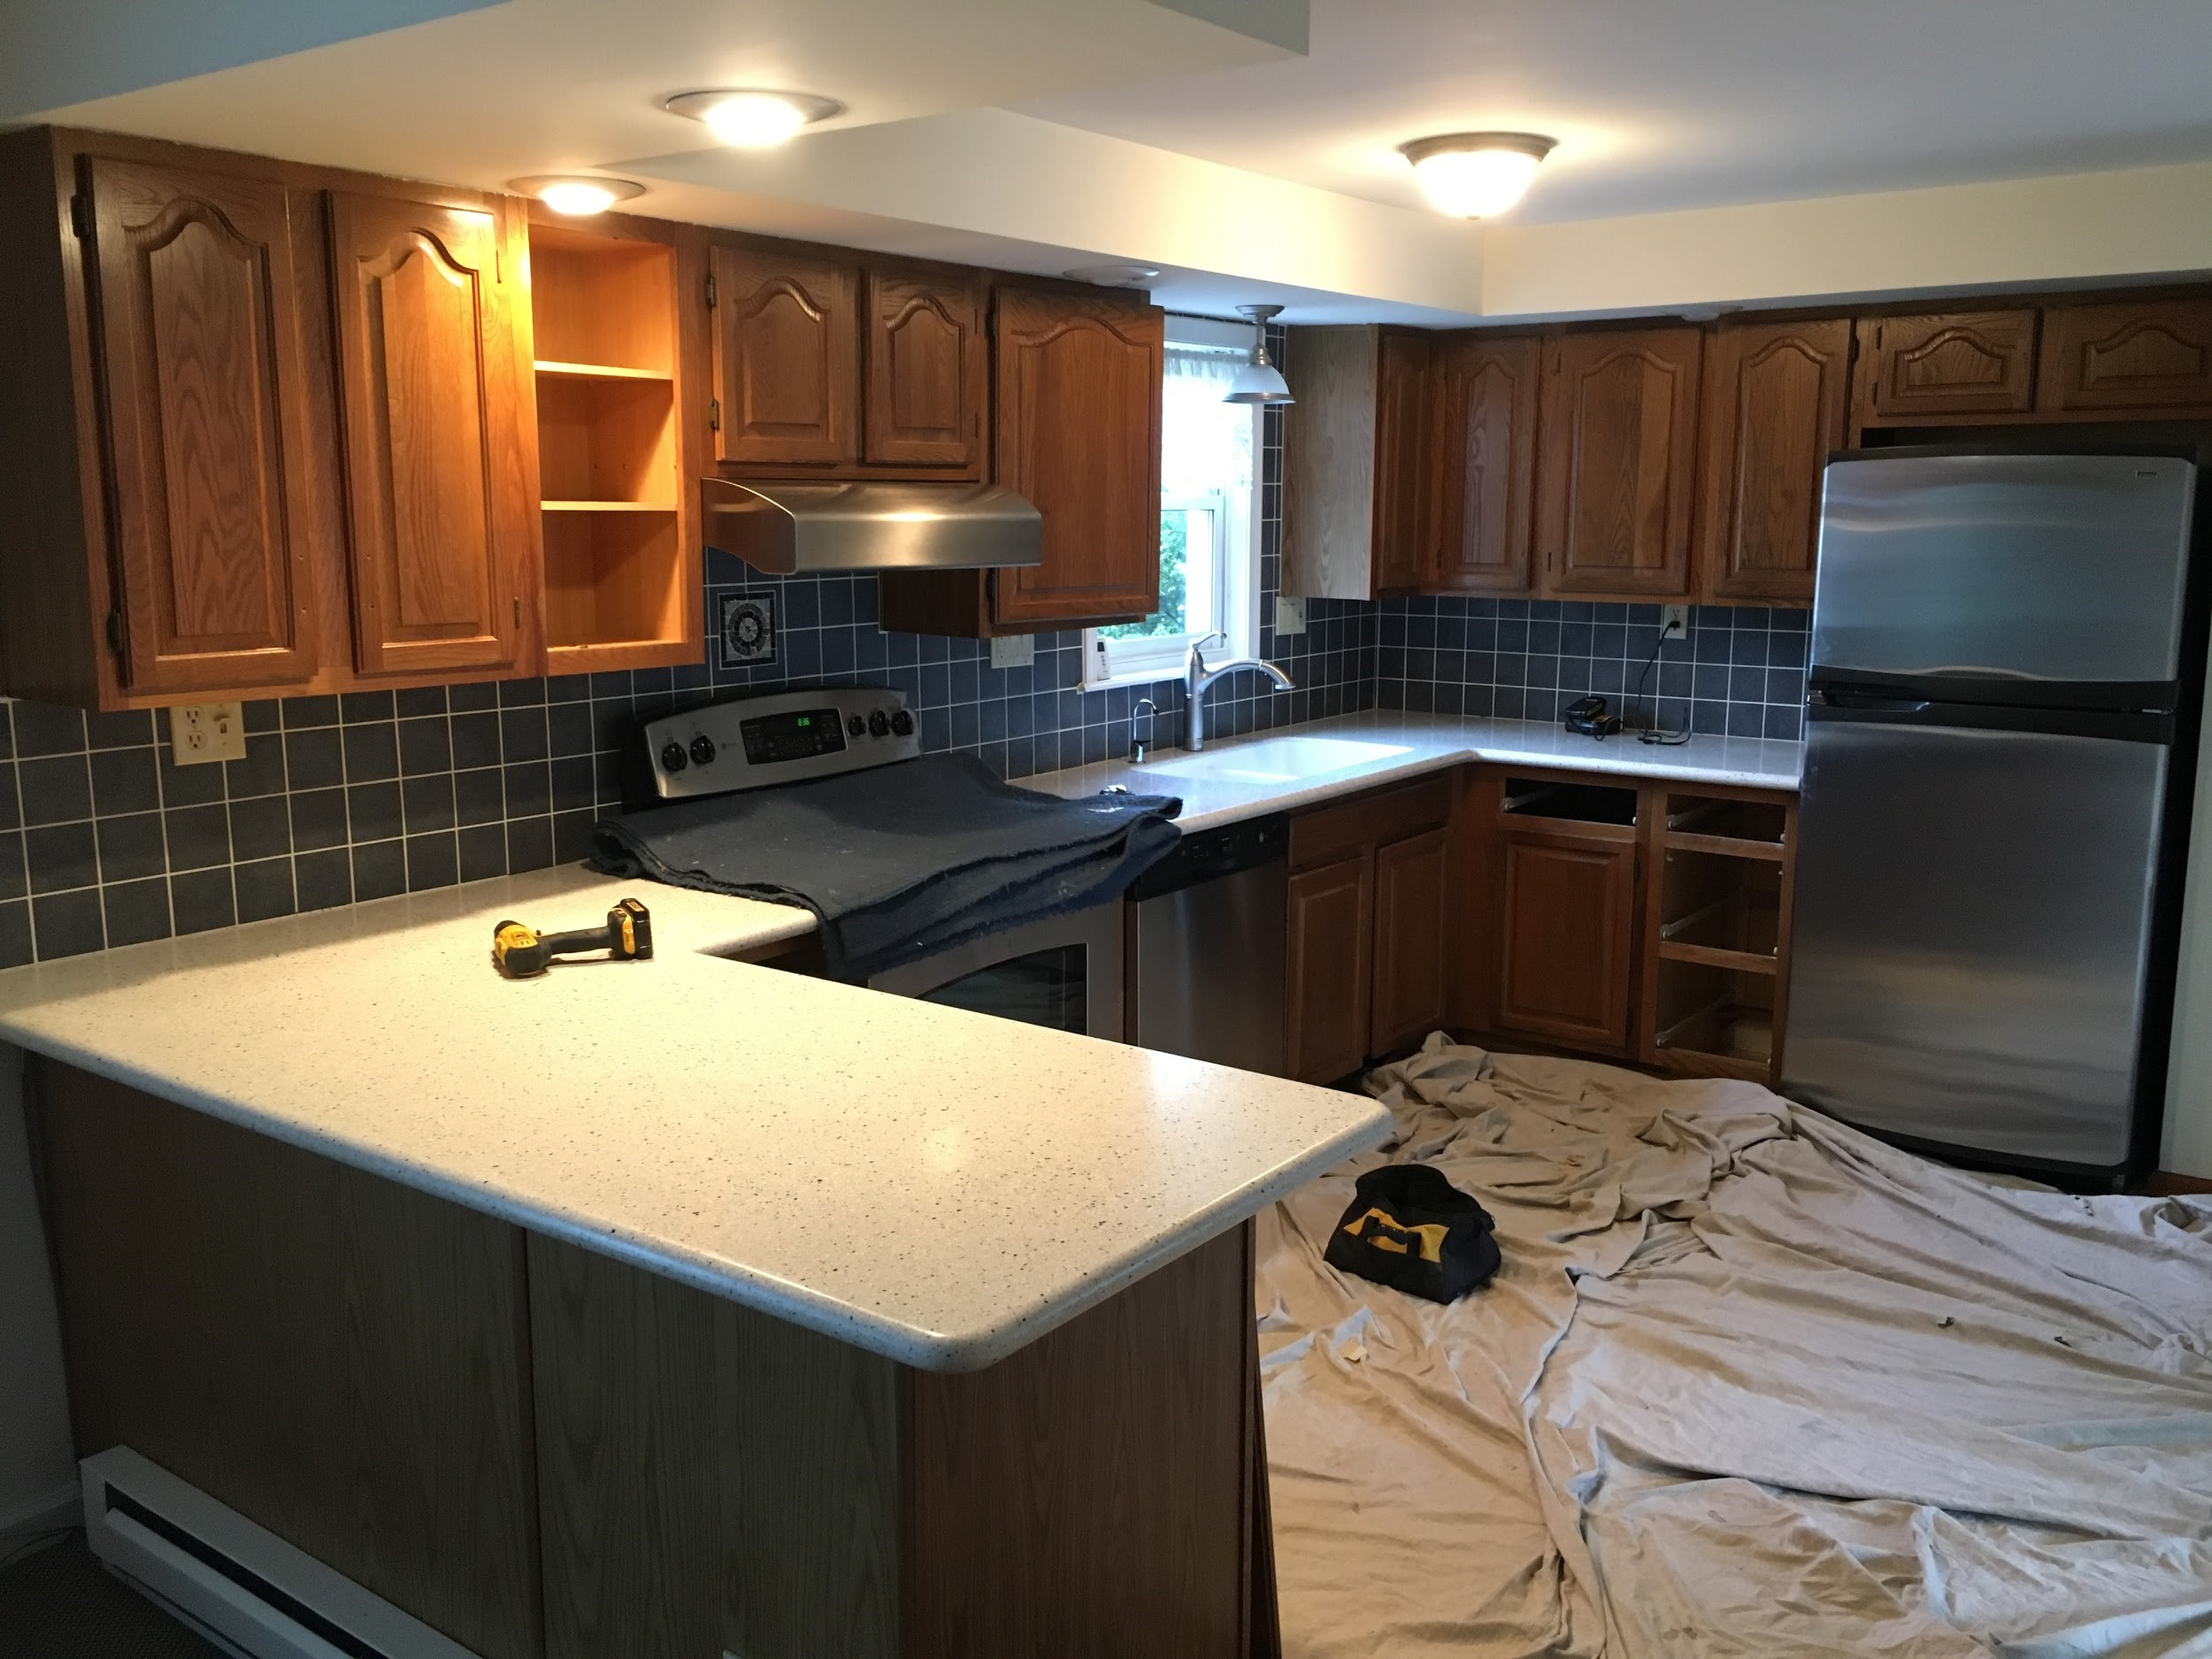 Kitchen Remodeling pany in Bucks County PA